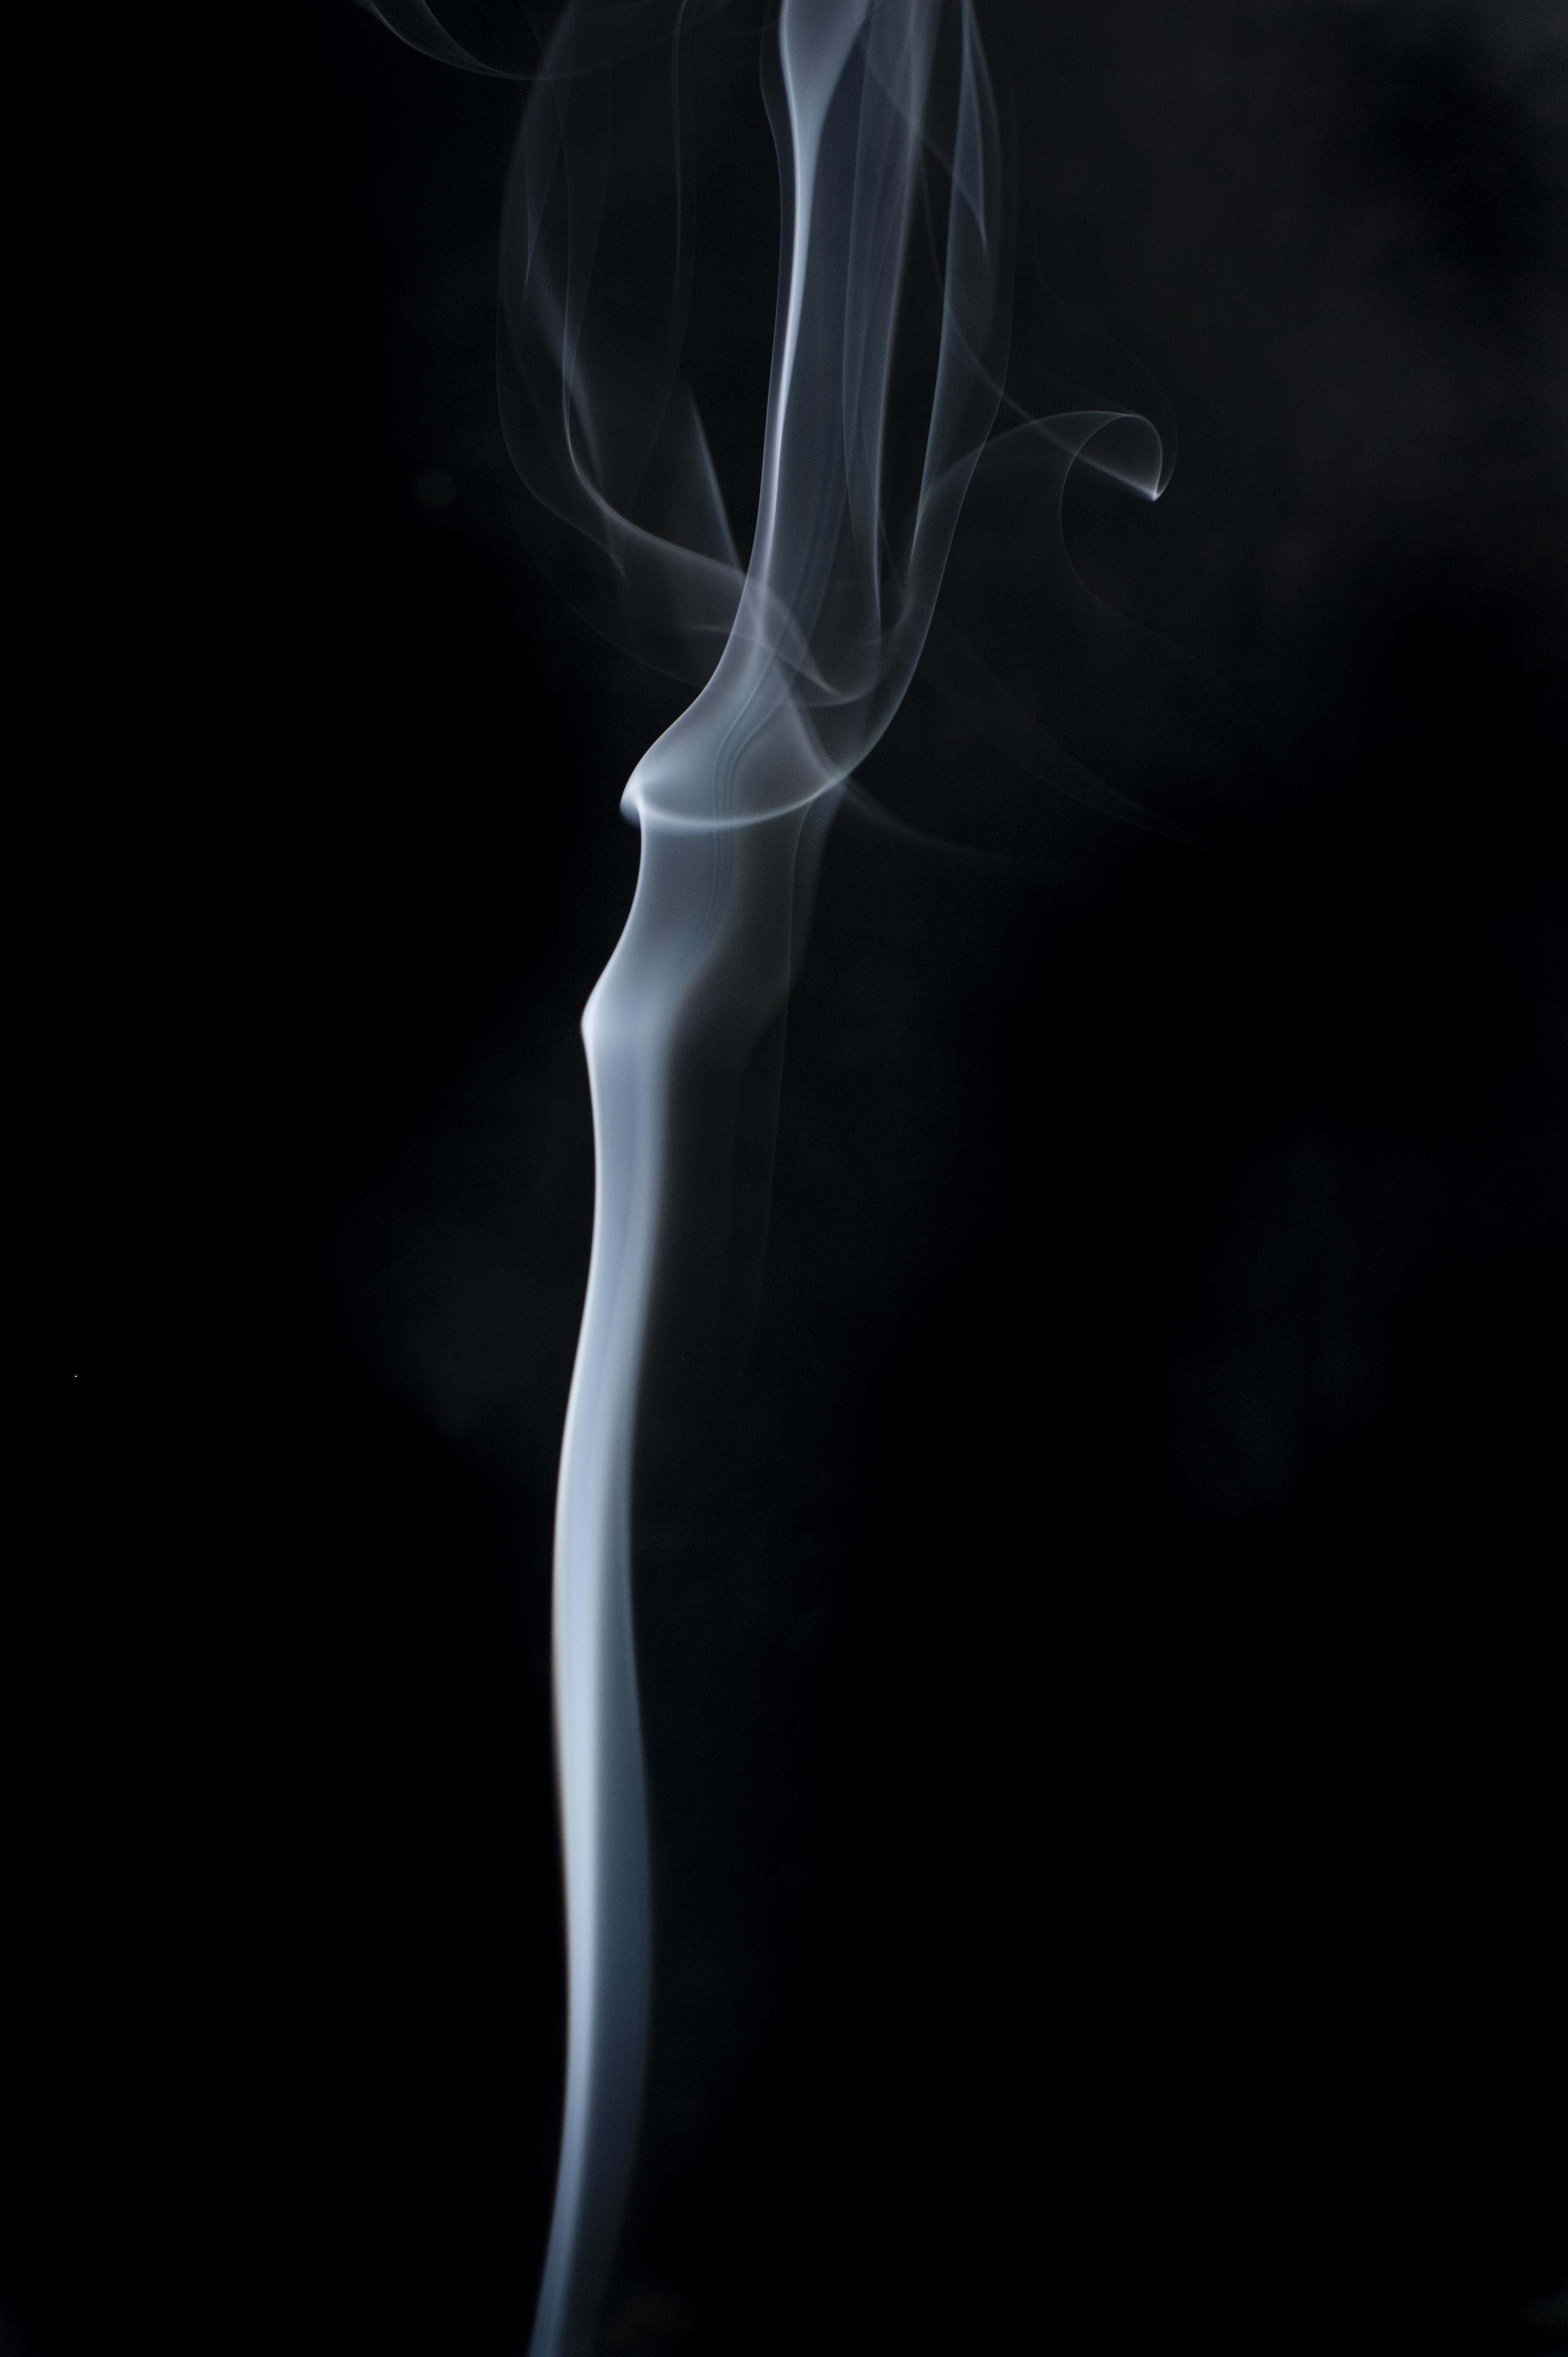 an organically twisting and bending line of smoke